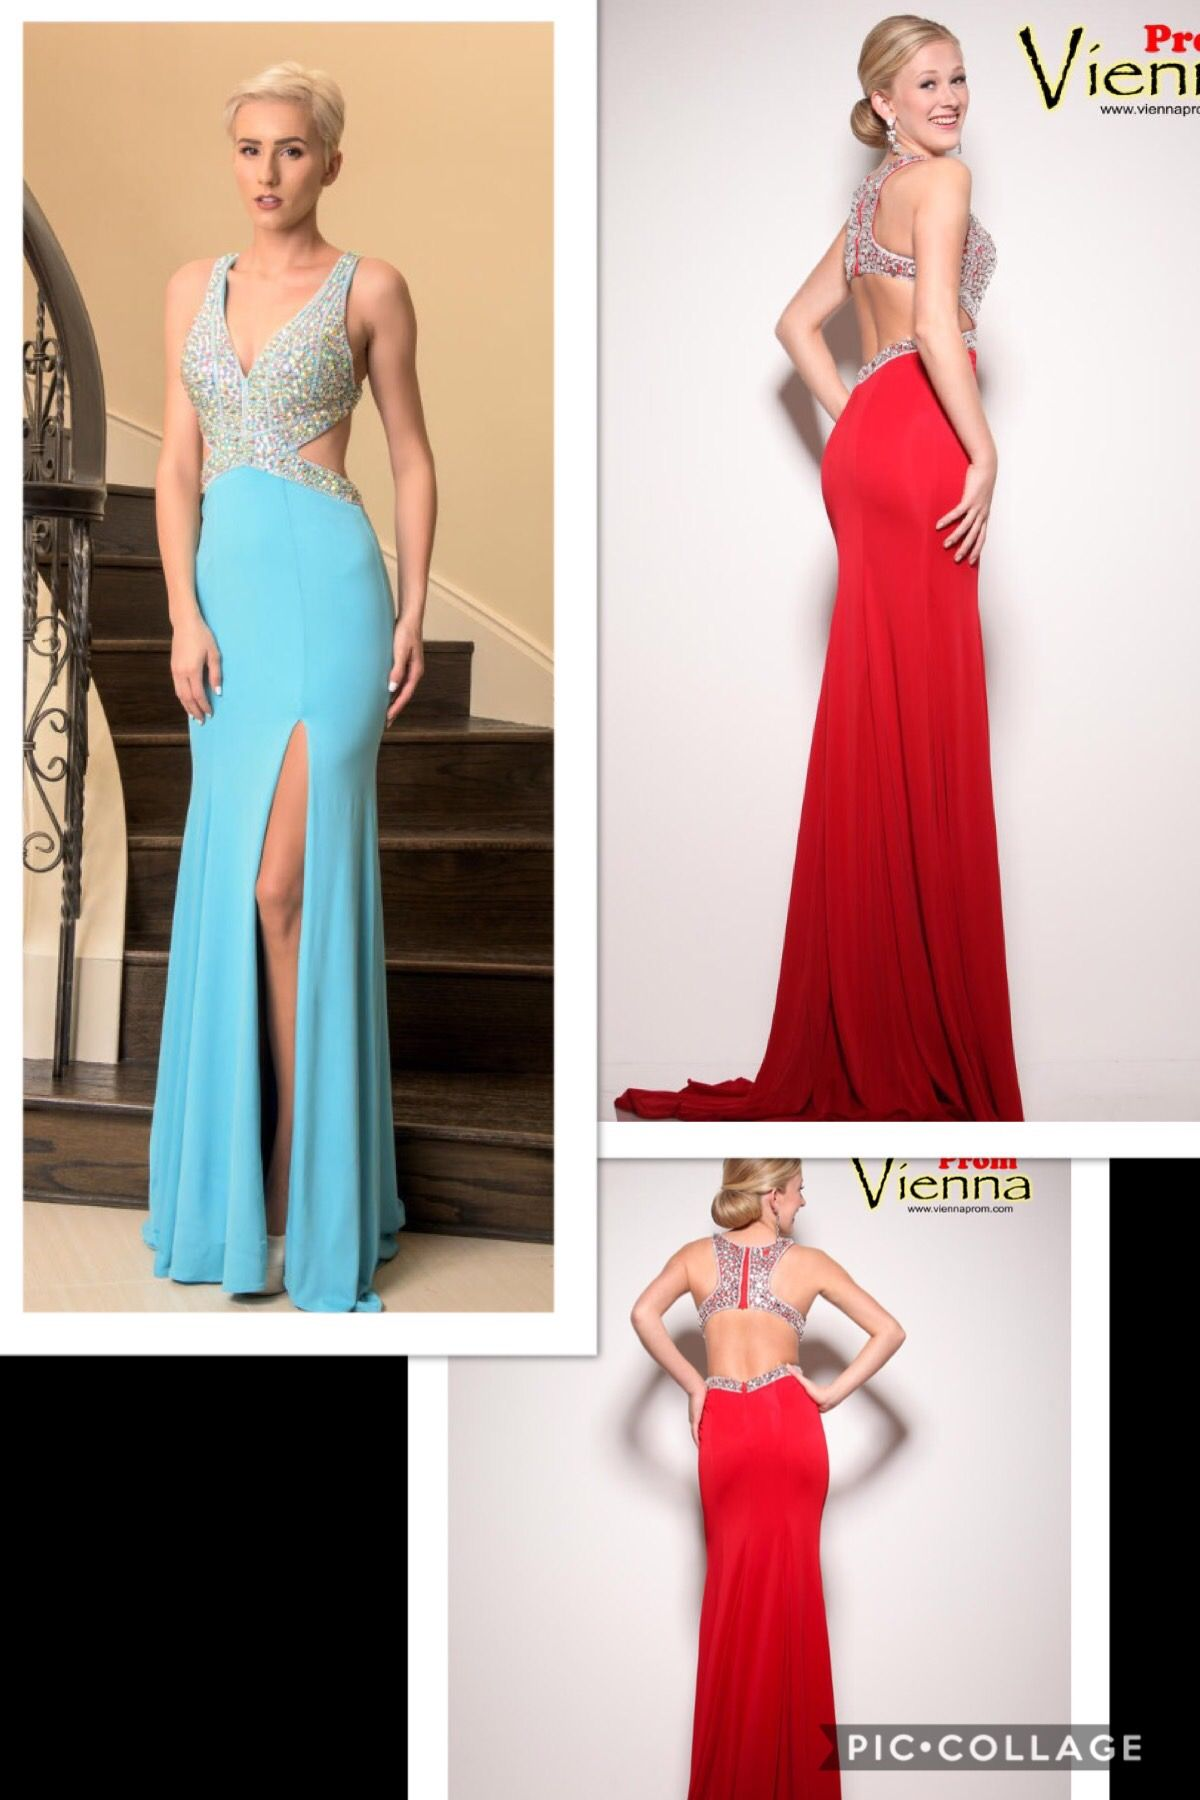 This vienna prom gown is totally stunning with the jewels u cutouts